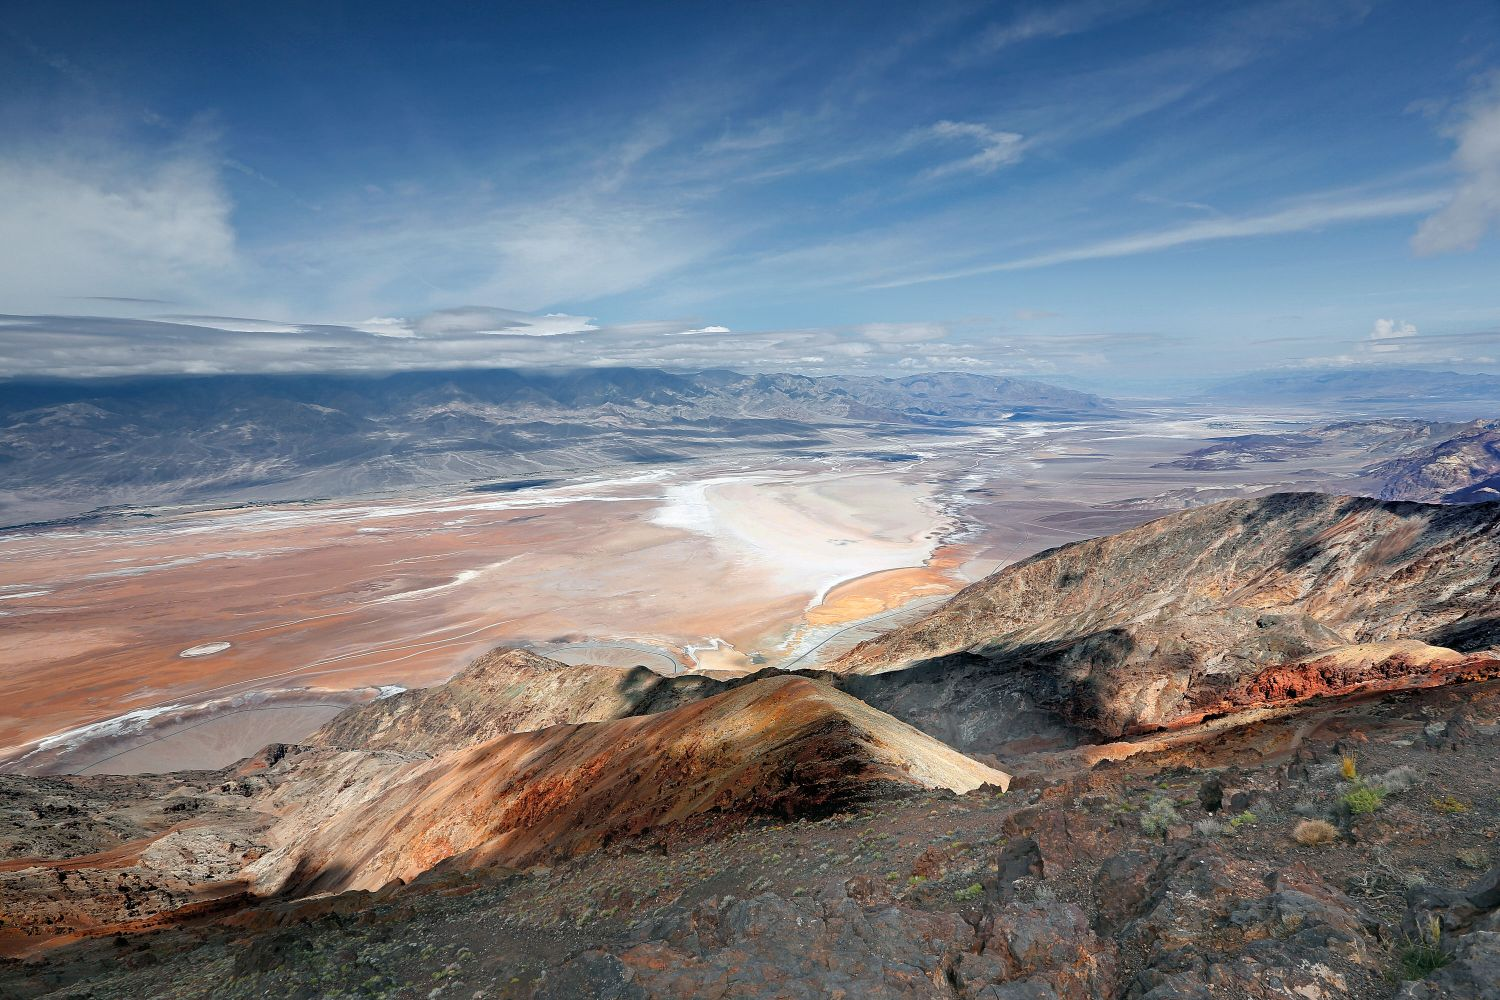 Dante's View, Death Valley is more that 5,000 ft above the valley floor